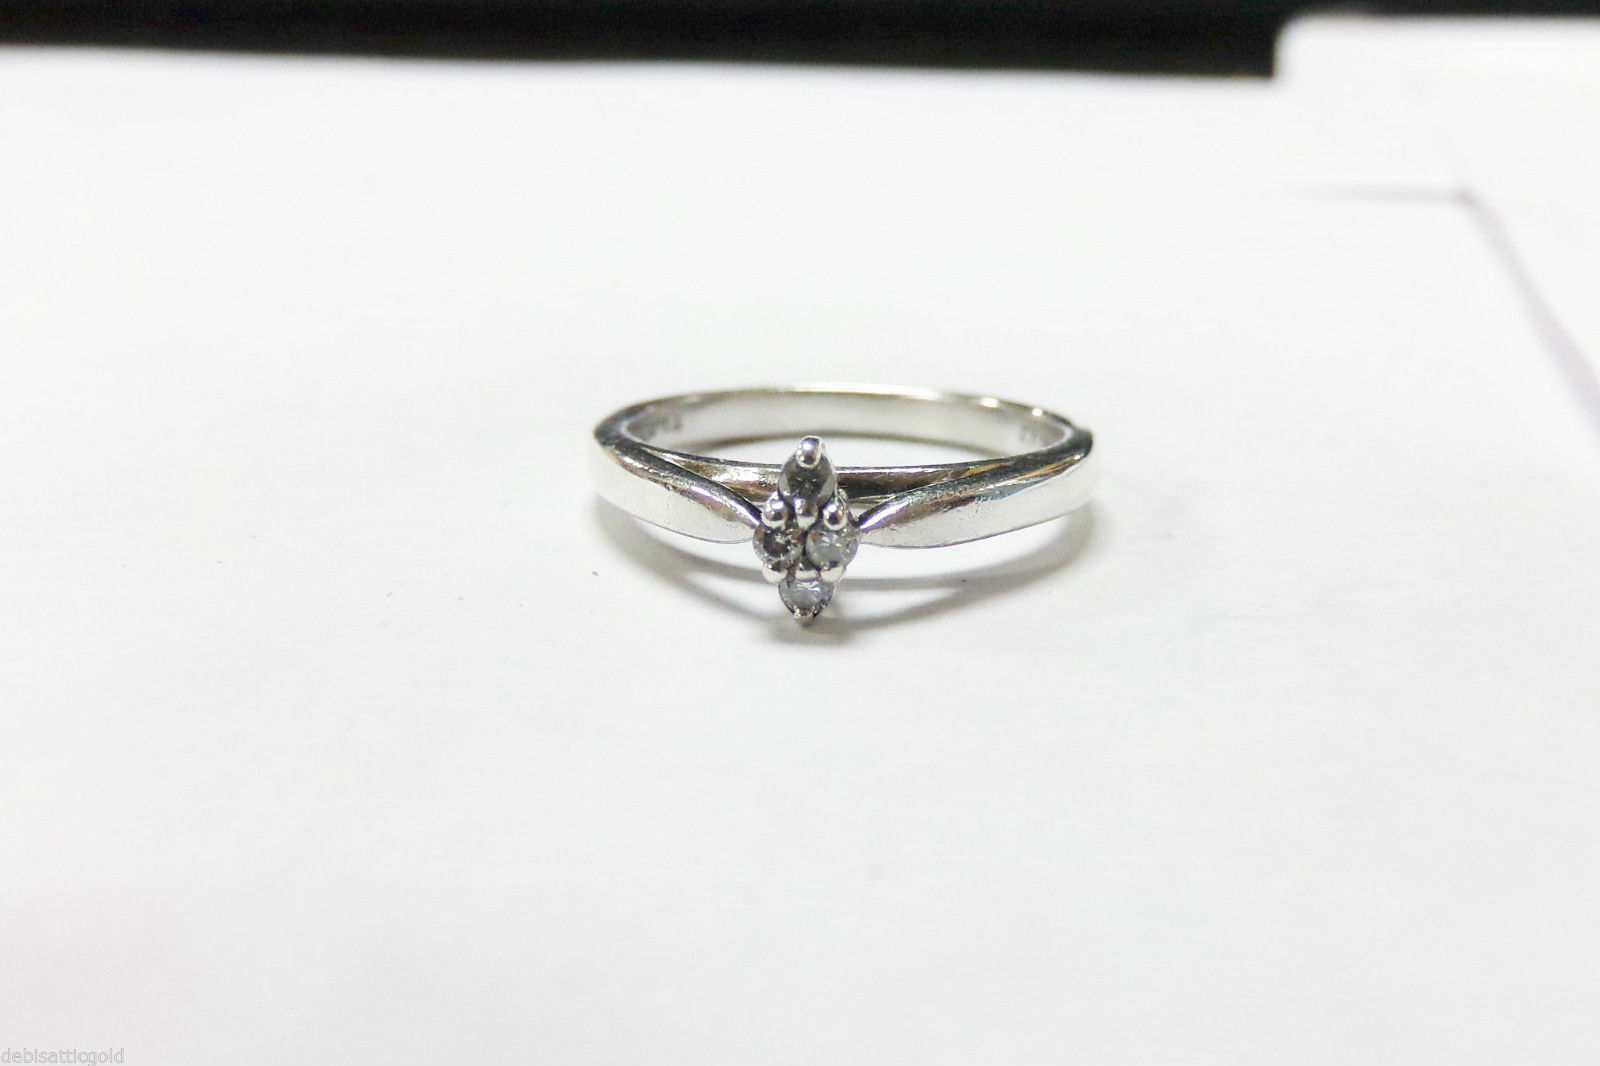 zales womens wedding rings Vera Wang Love Collection Princess Cut Double Twist Frame Engagement Ring The pictures on the Zales